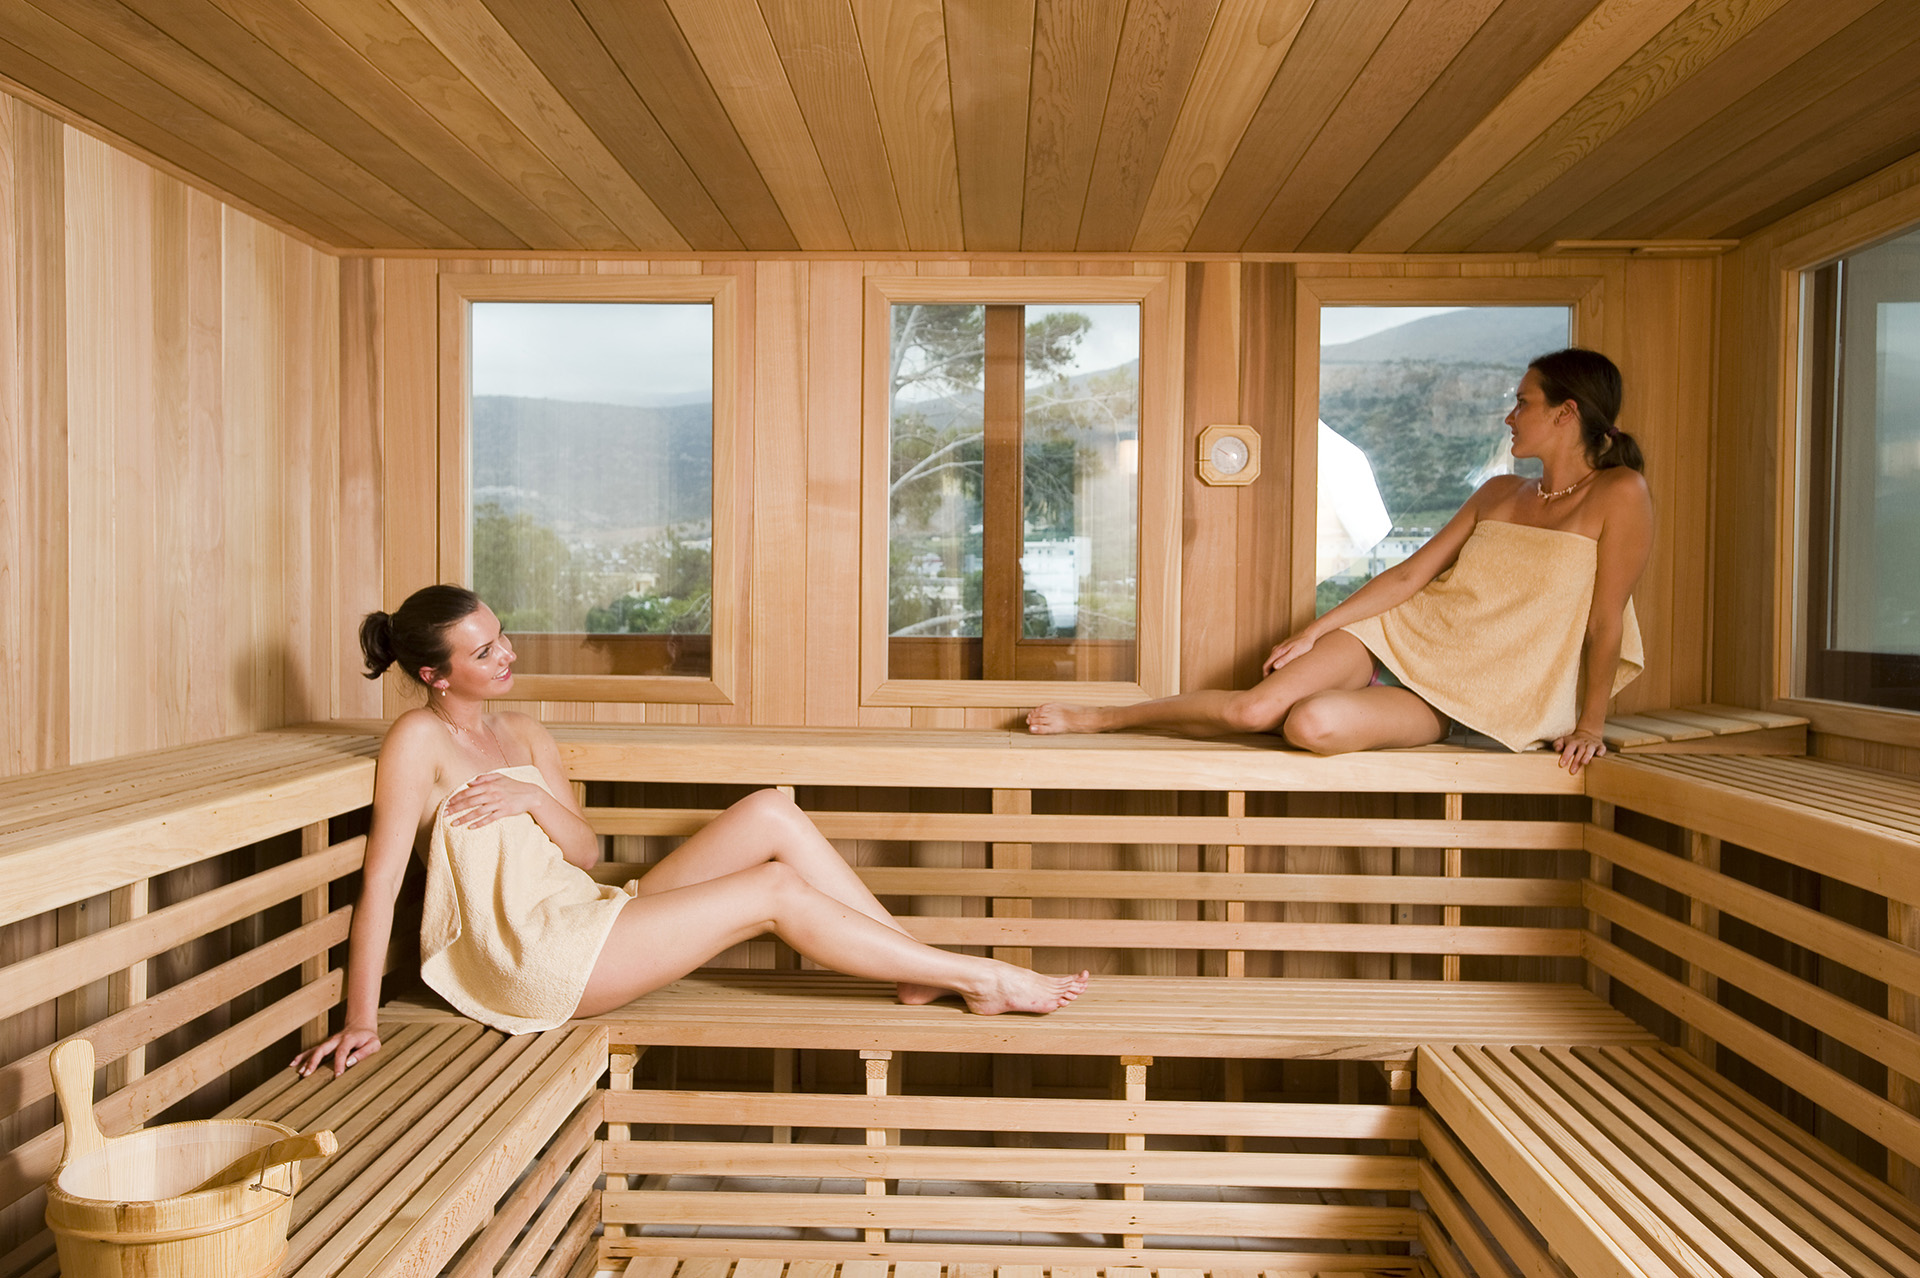 Outdoor sauna rocky mountain pools and spas calgary for Cost to build a sauna